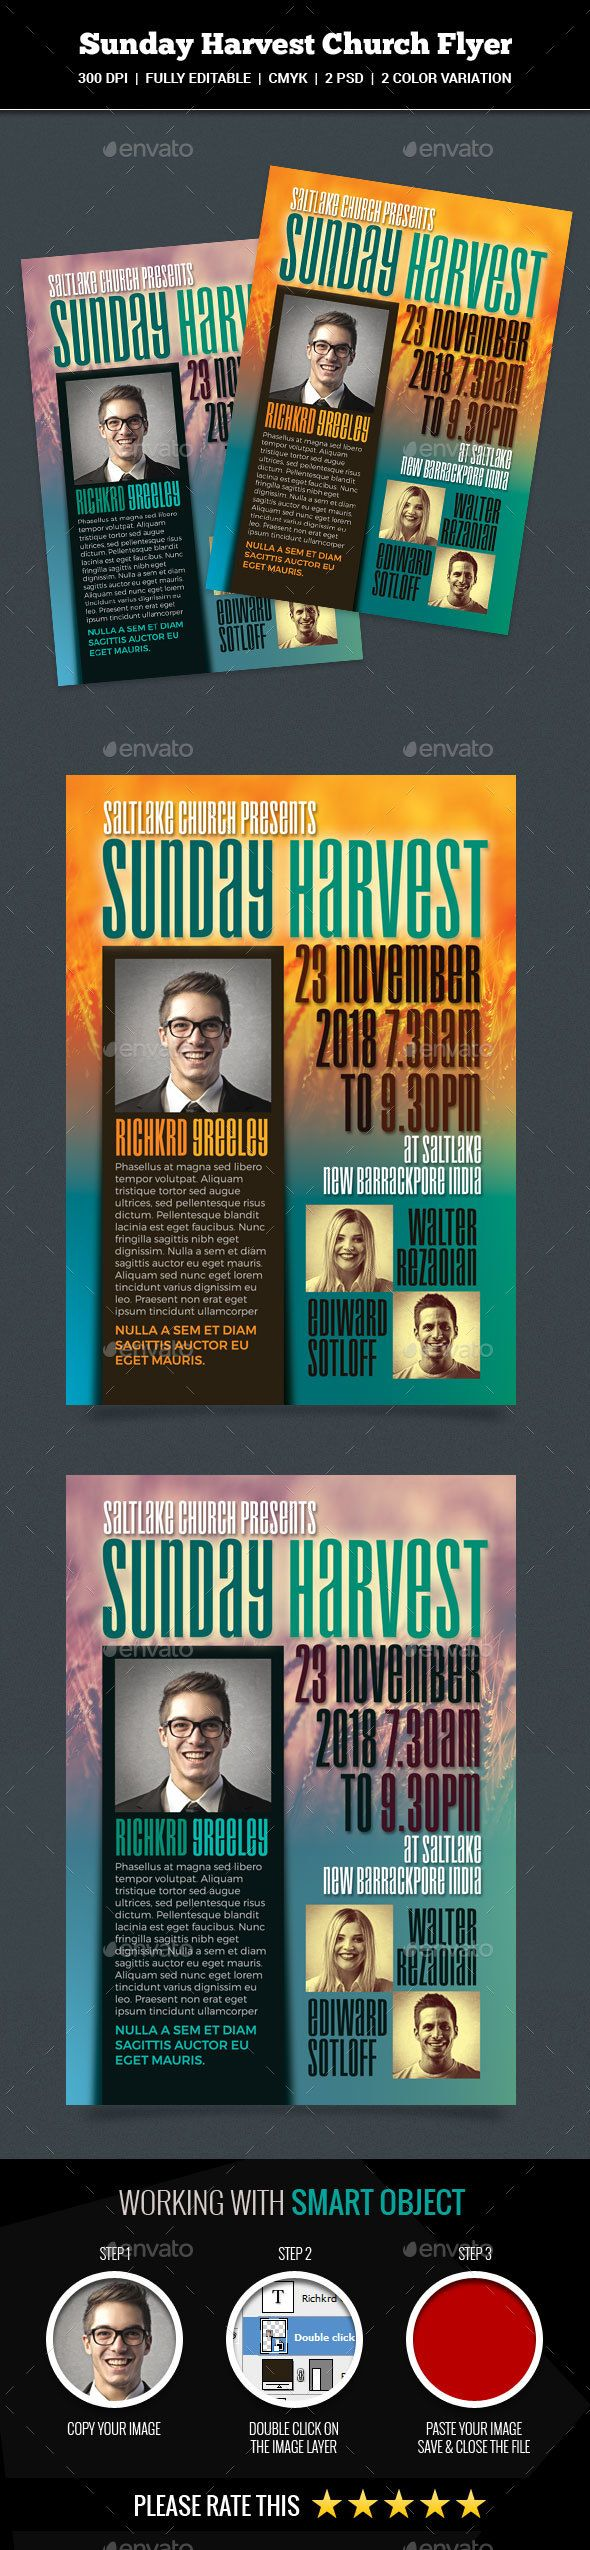 Sunday Harvest Church #Flyer - Church Flyers Download here: https://graphicriver.net/item/sunday-harvest-church-flyer/20325213?ref=alena994